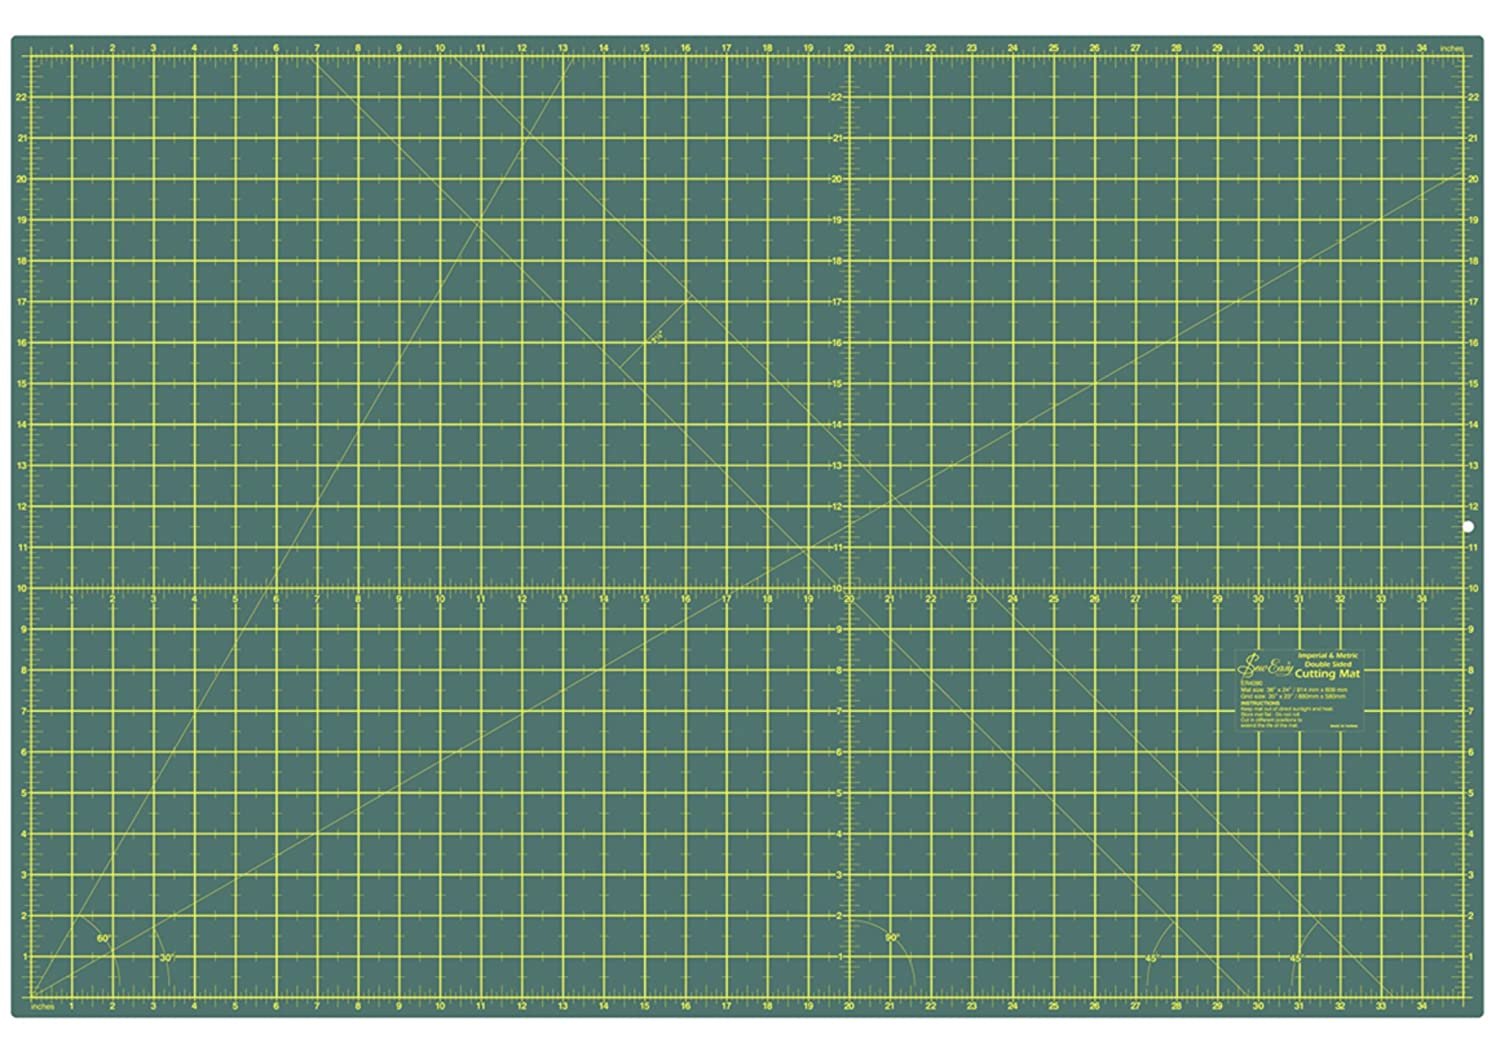 Sew Easy ER4090 Self-Healing 2-Sided Cutting Mat Imperial/Metric Grid 900x600mm Groves